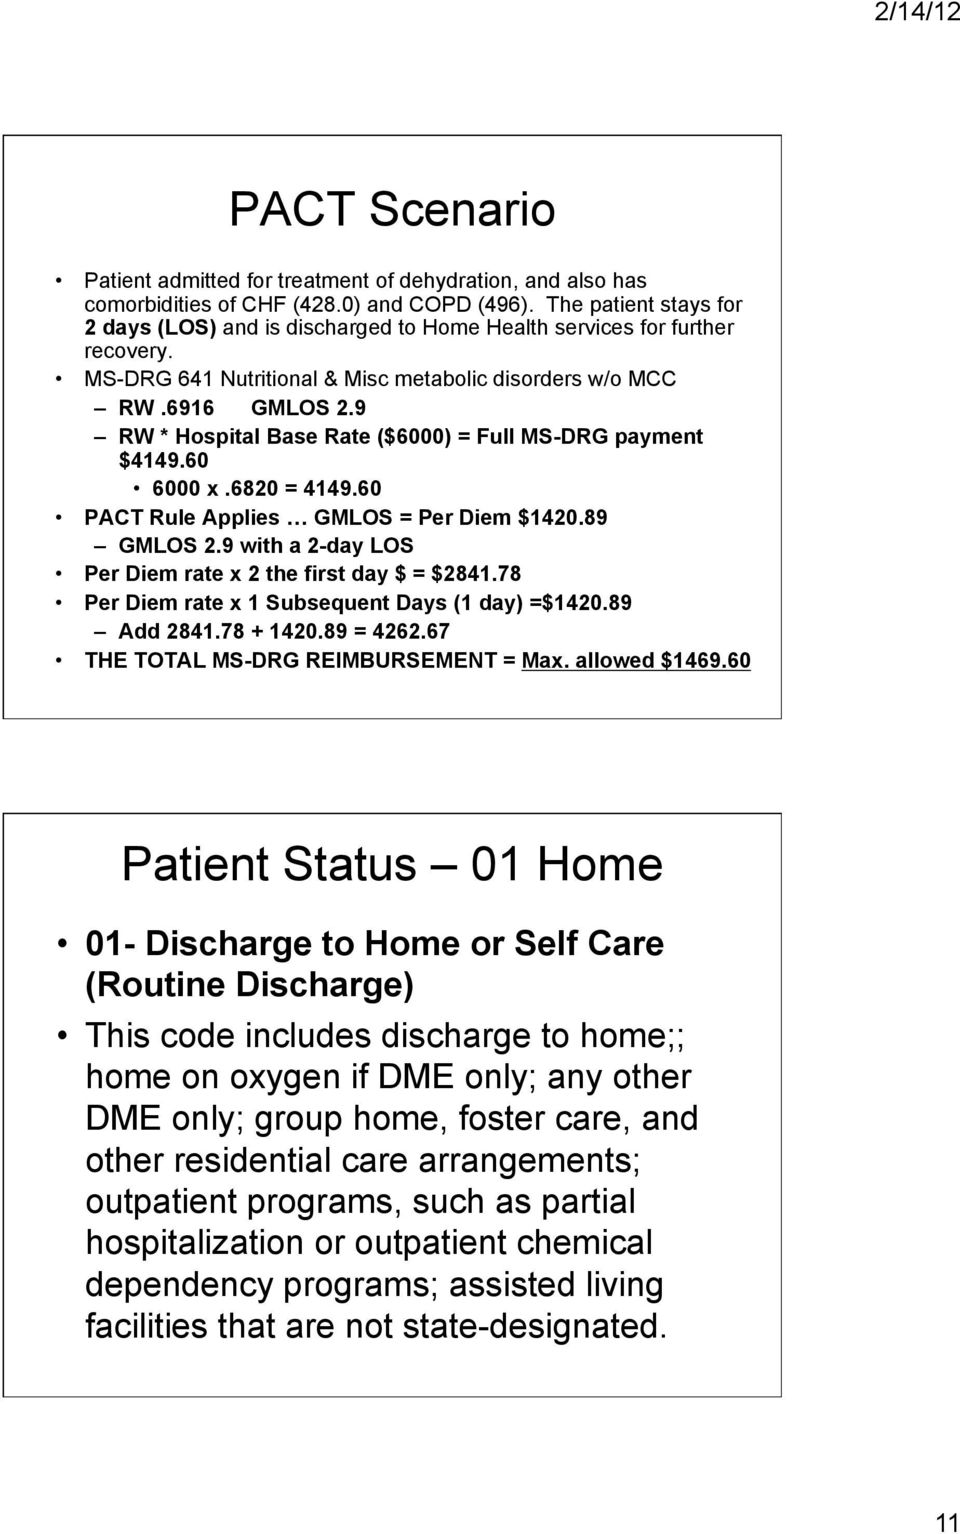 9 RW * Hospital Base Rate ($6000) = Full MS-DRG payment $4149.60 6000 x.6820 = 4149.60 PACT Rule Applies GMLOS = Per Diem $1420.89 GMLOS 2.9 with a 2-day LOS Per Diem rate x 2 the first day $ = $2841.